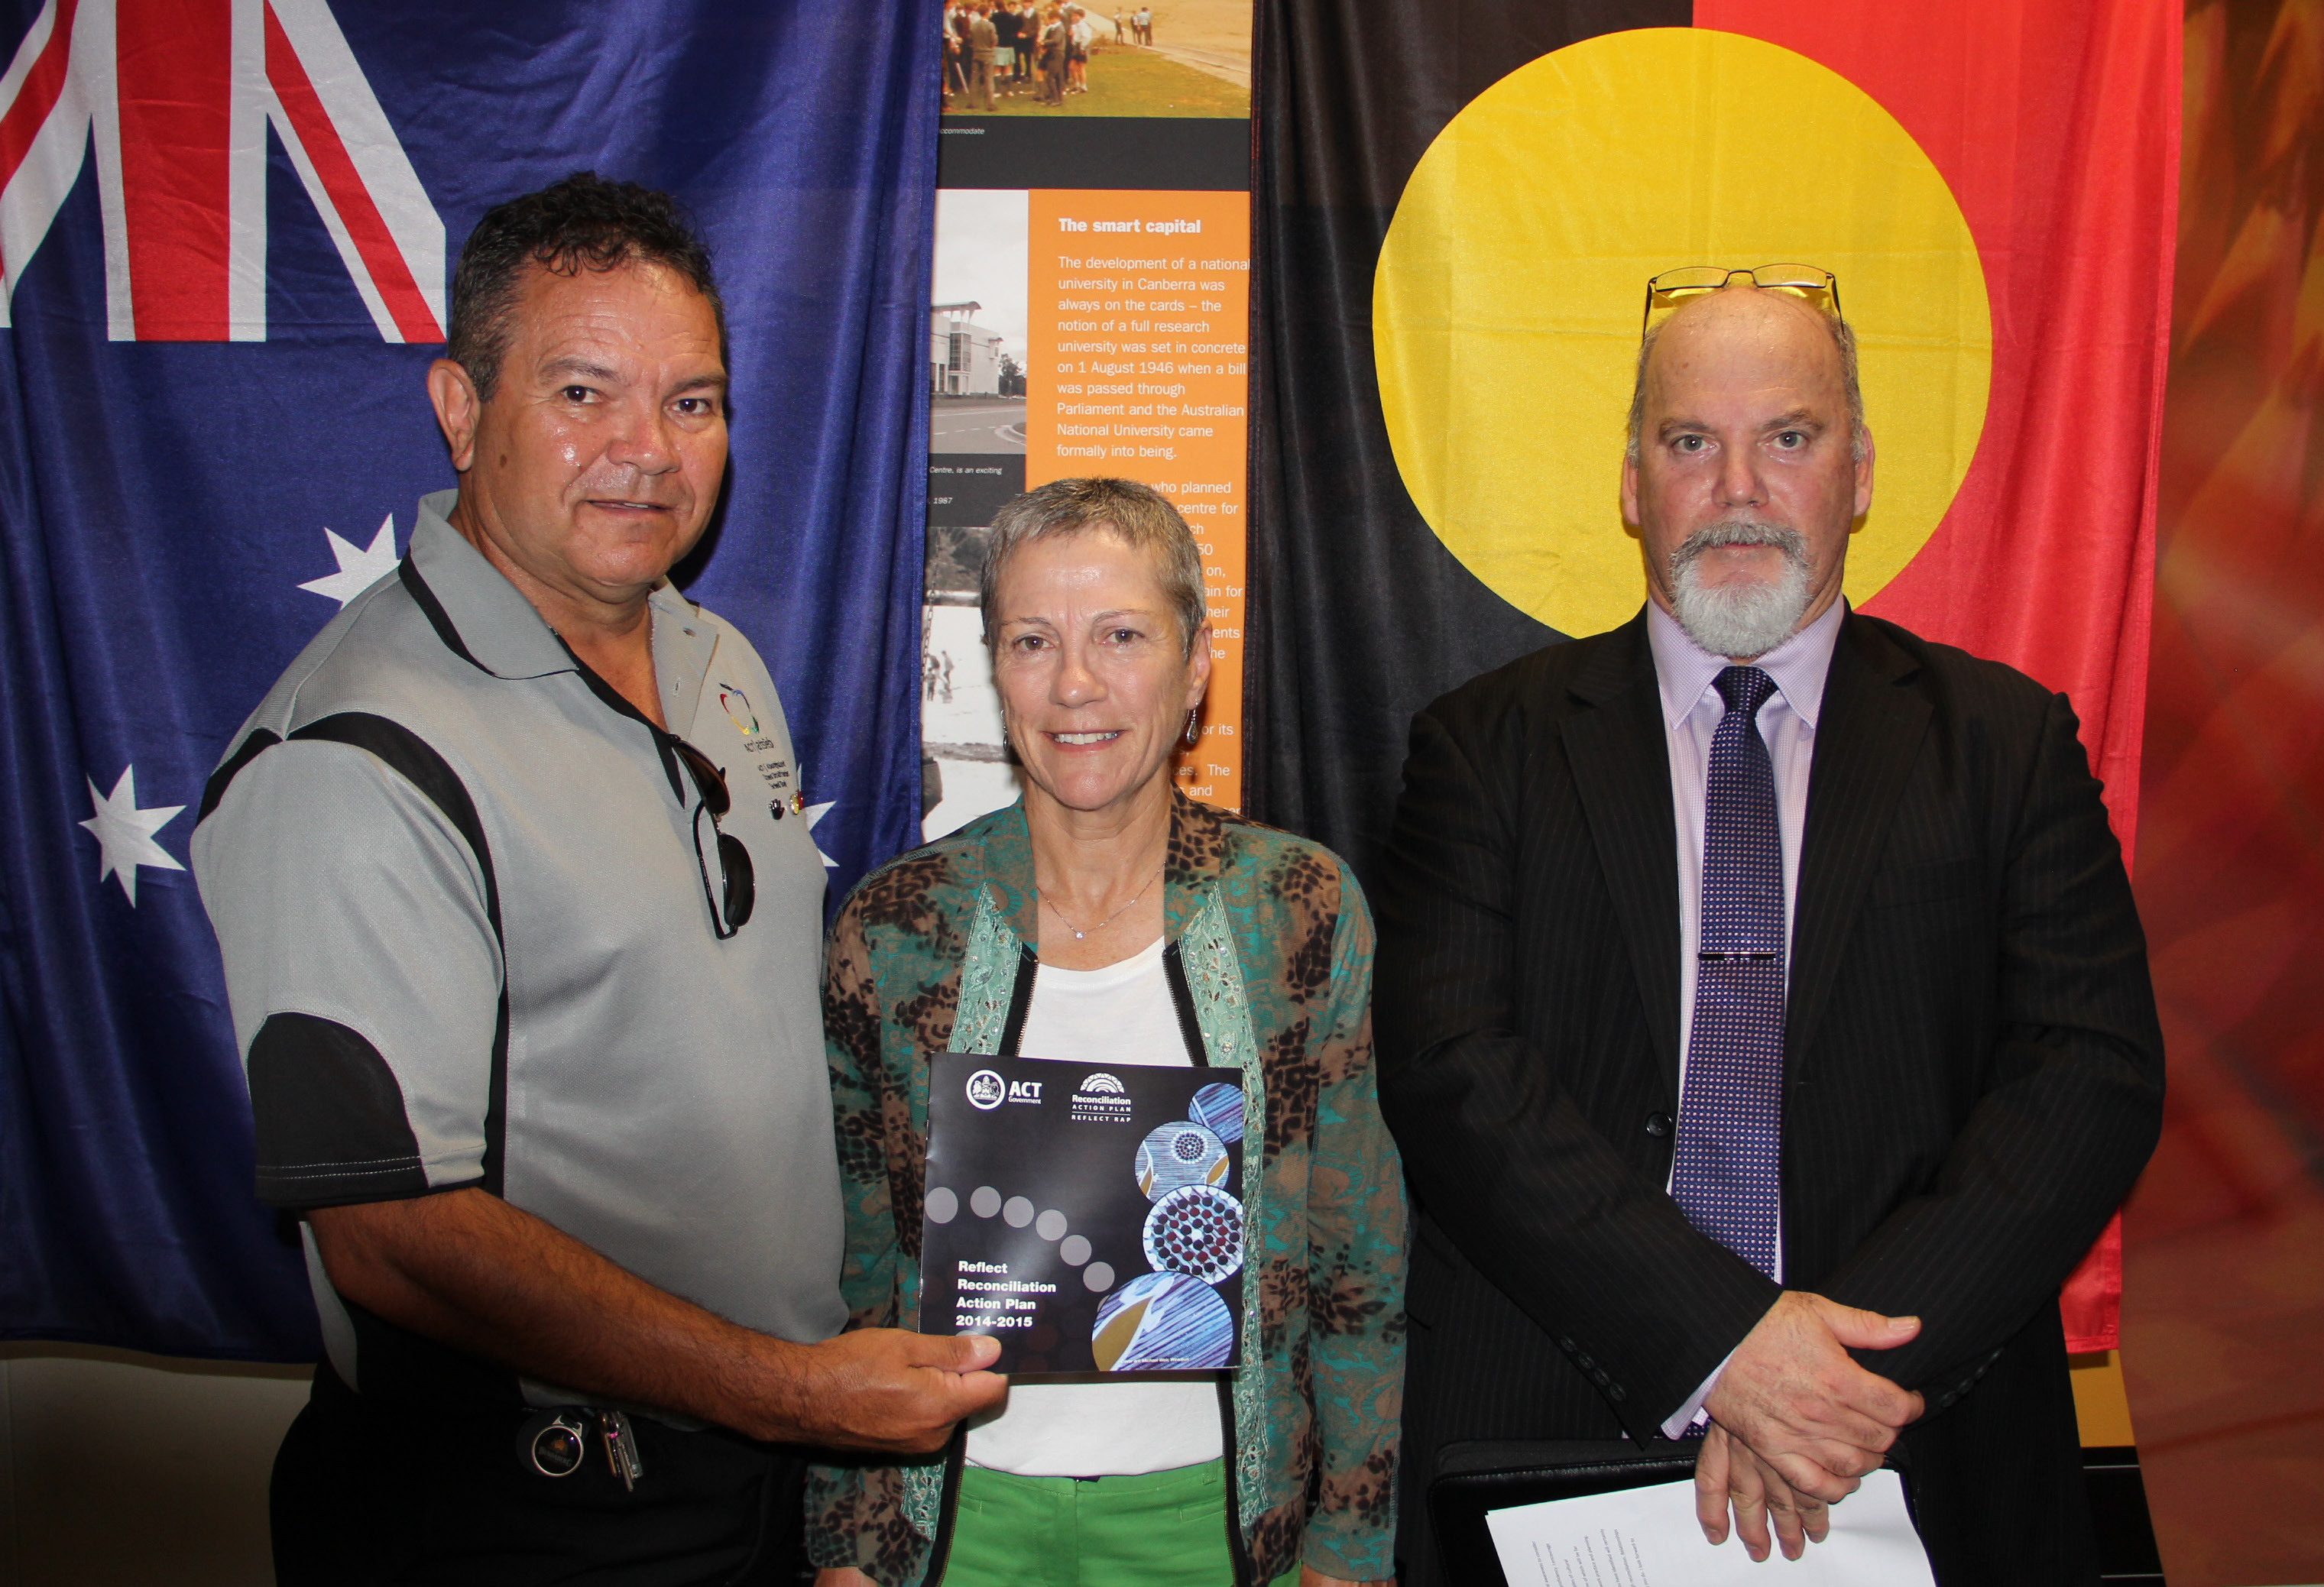 Three people standing infront of the Australian and Aboriginal flag at the launch of the Directorates Action Plan showing a copy of the plan